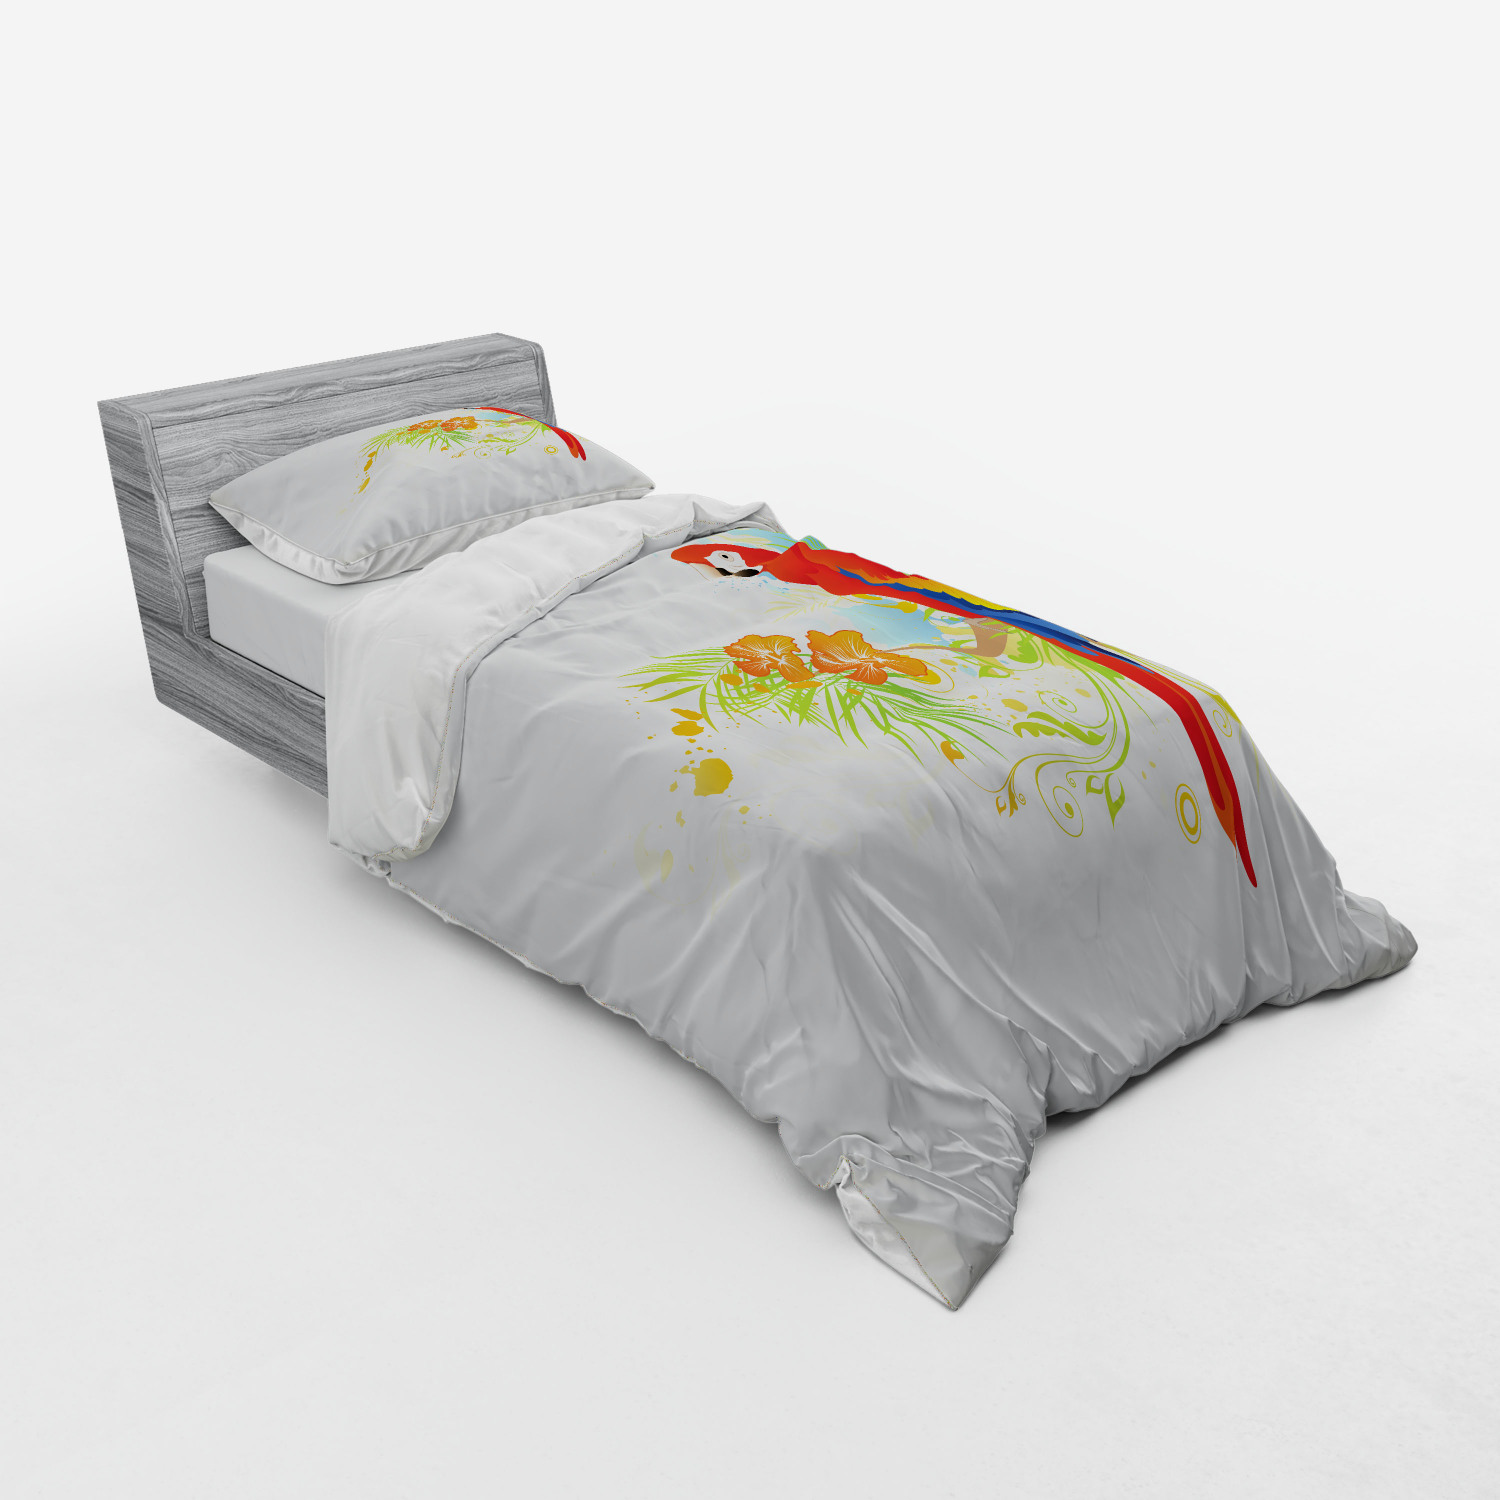 thumbnail 133 - Ambesonne Summer Bedding Set Duvet Cover Sham Fitted Sheet in 3 Sizes